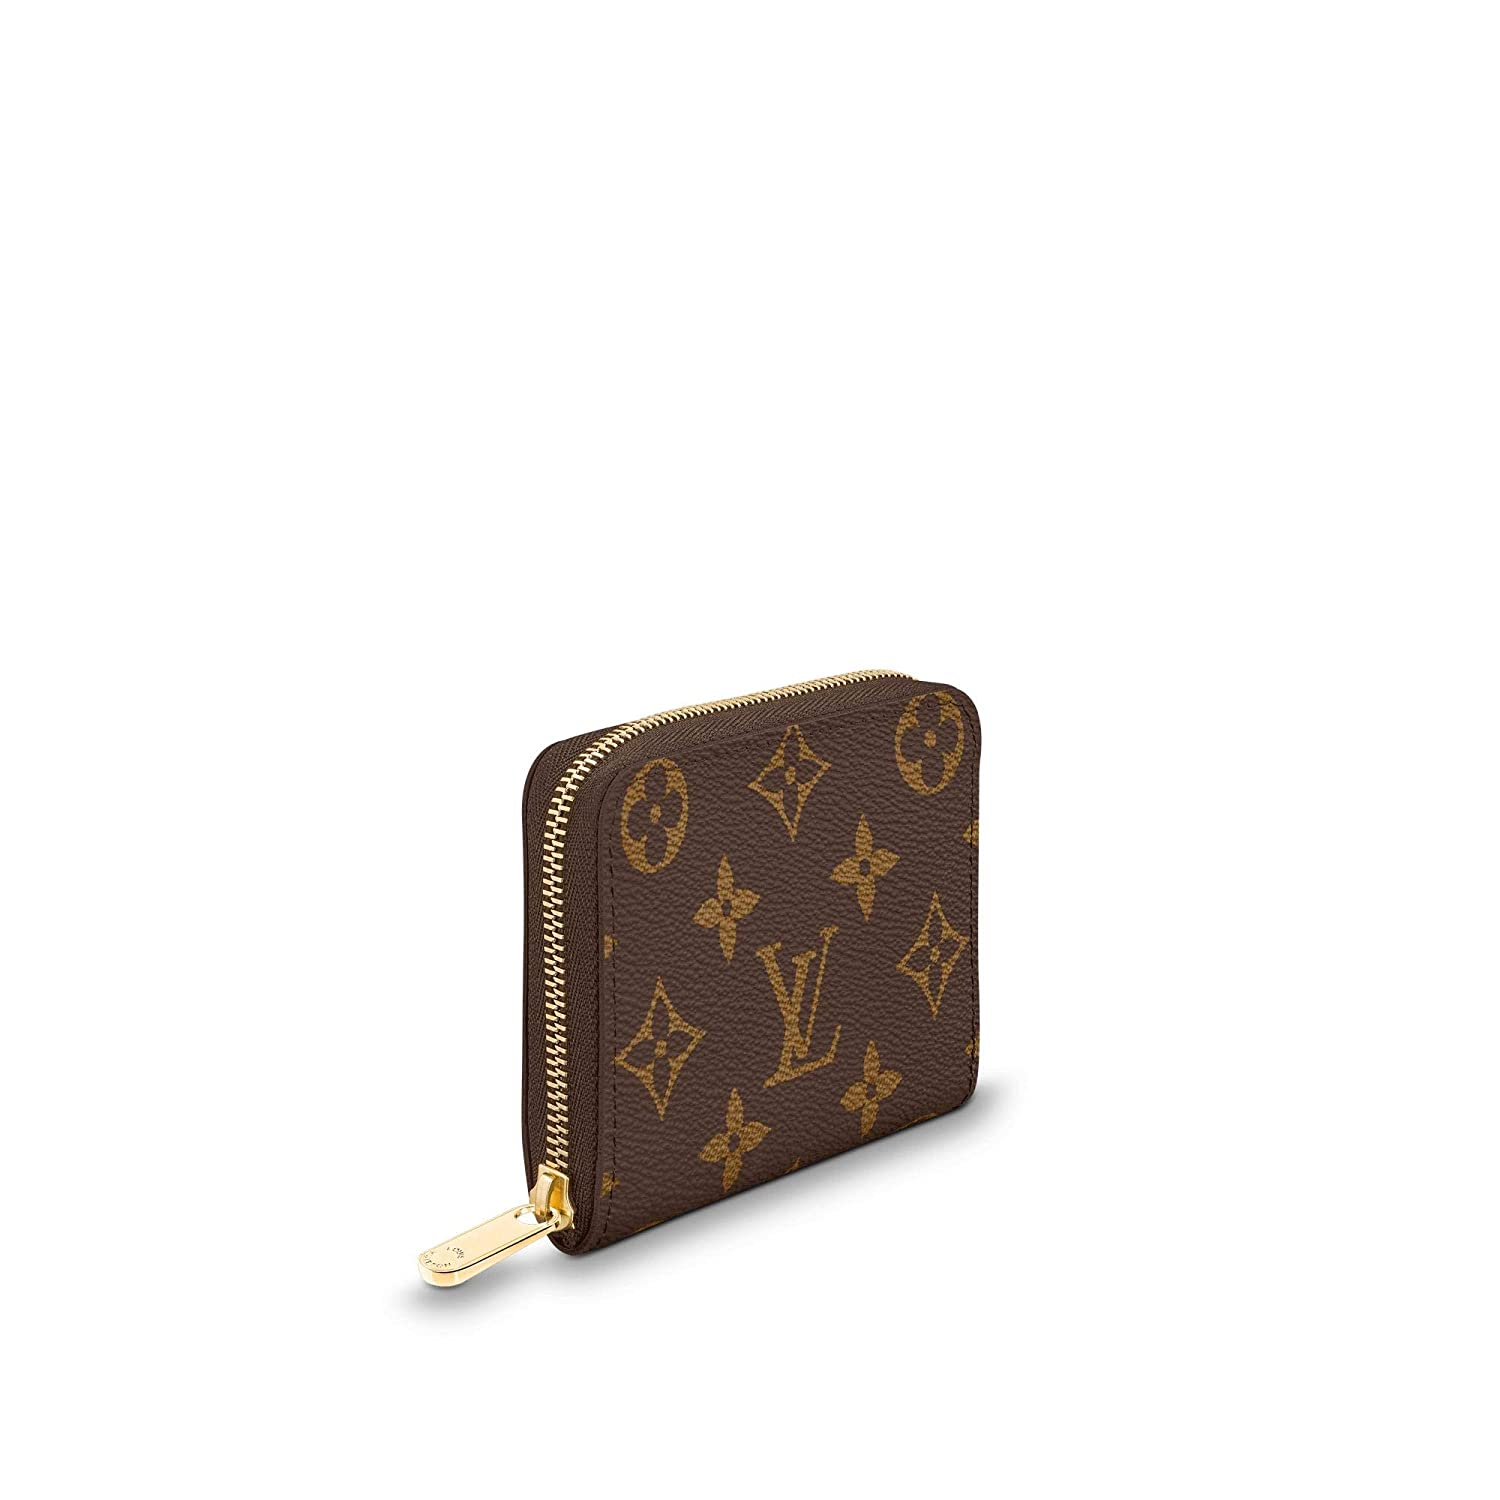 Amazon.com: Louis Vuitton Zippy Coin Purse Monogram Canvas ...